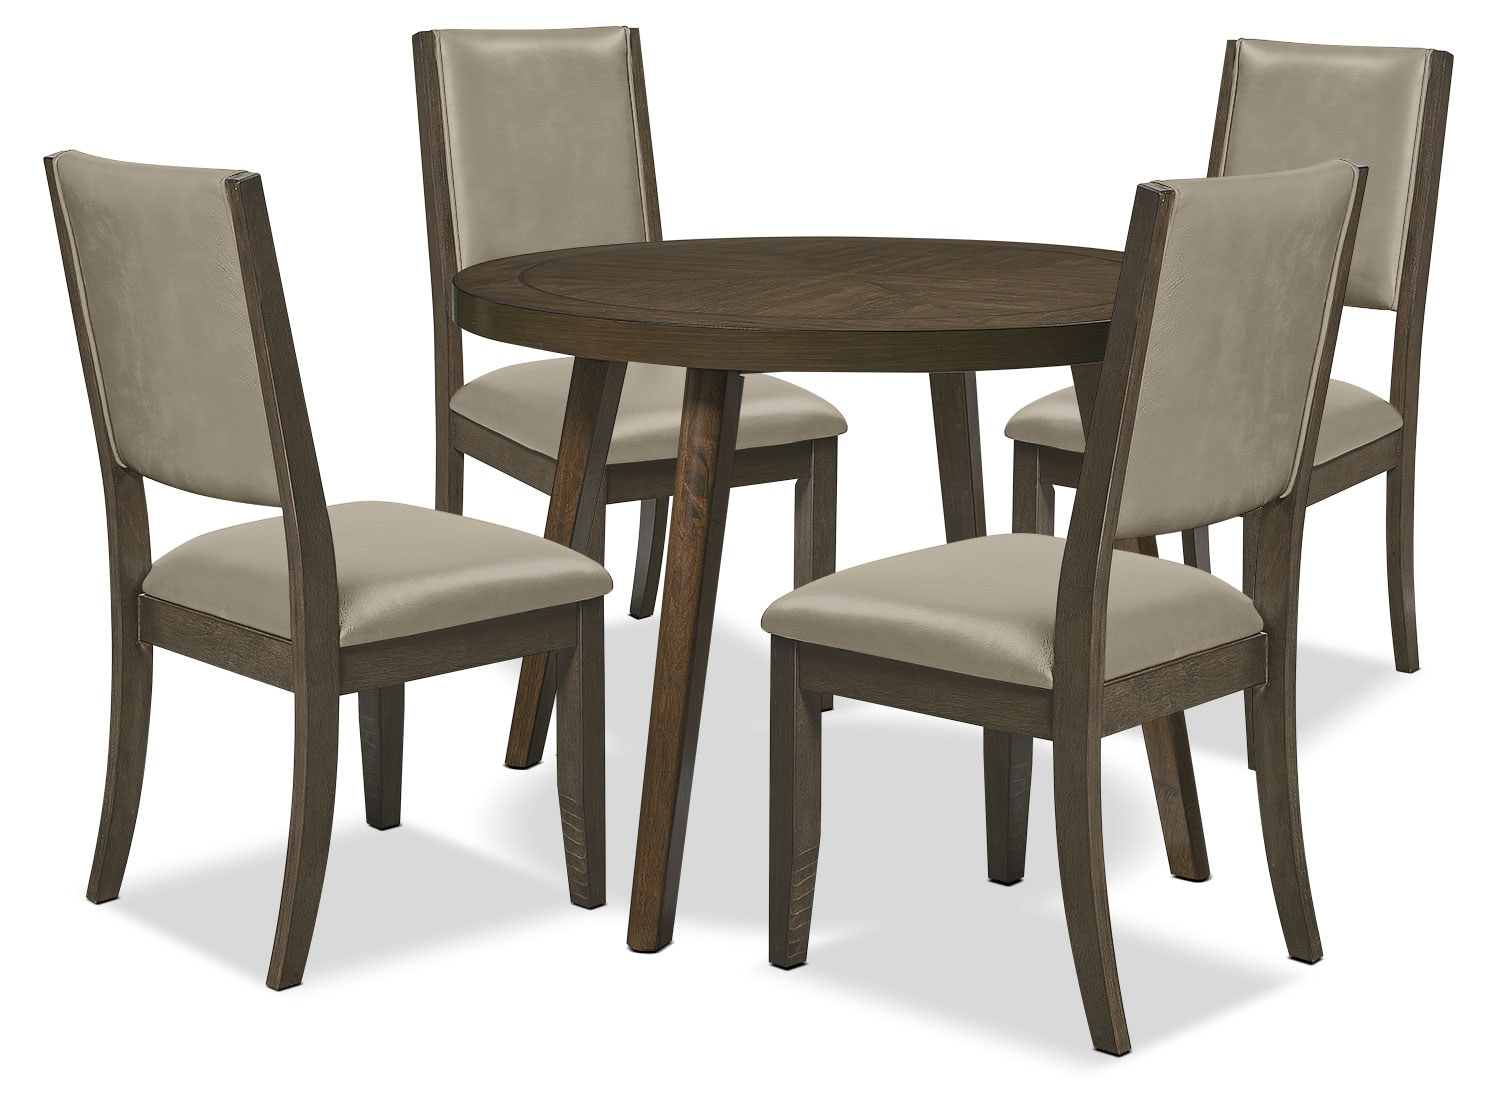 Banff 5 Piece Dining Package with Round Table Quarry  : 539912 from www.thebrick.com size 1500 x 1103 jpeg 165kB